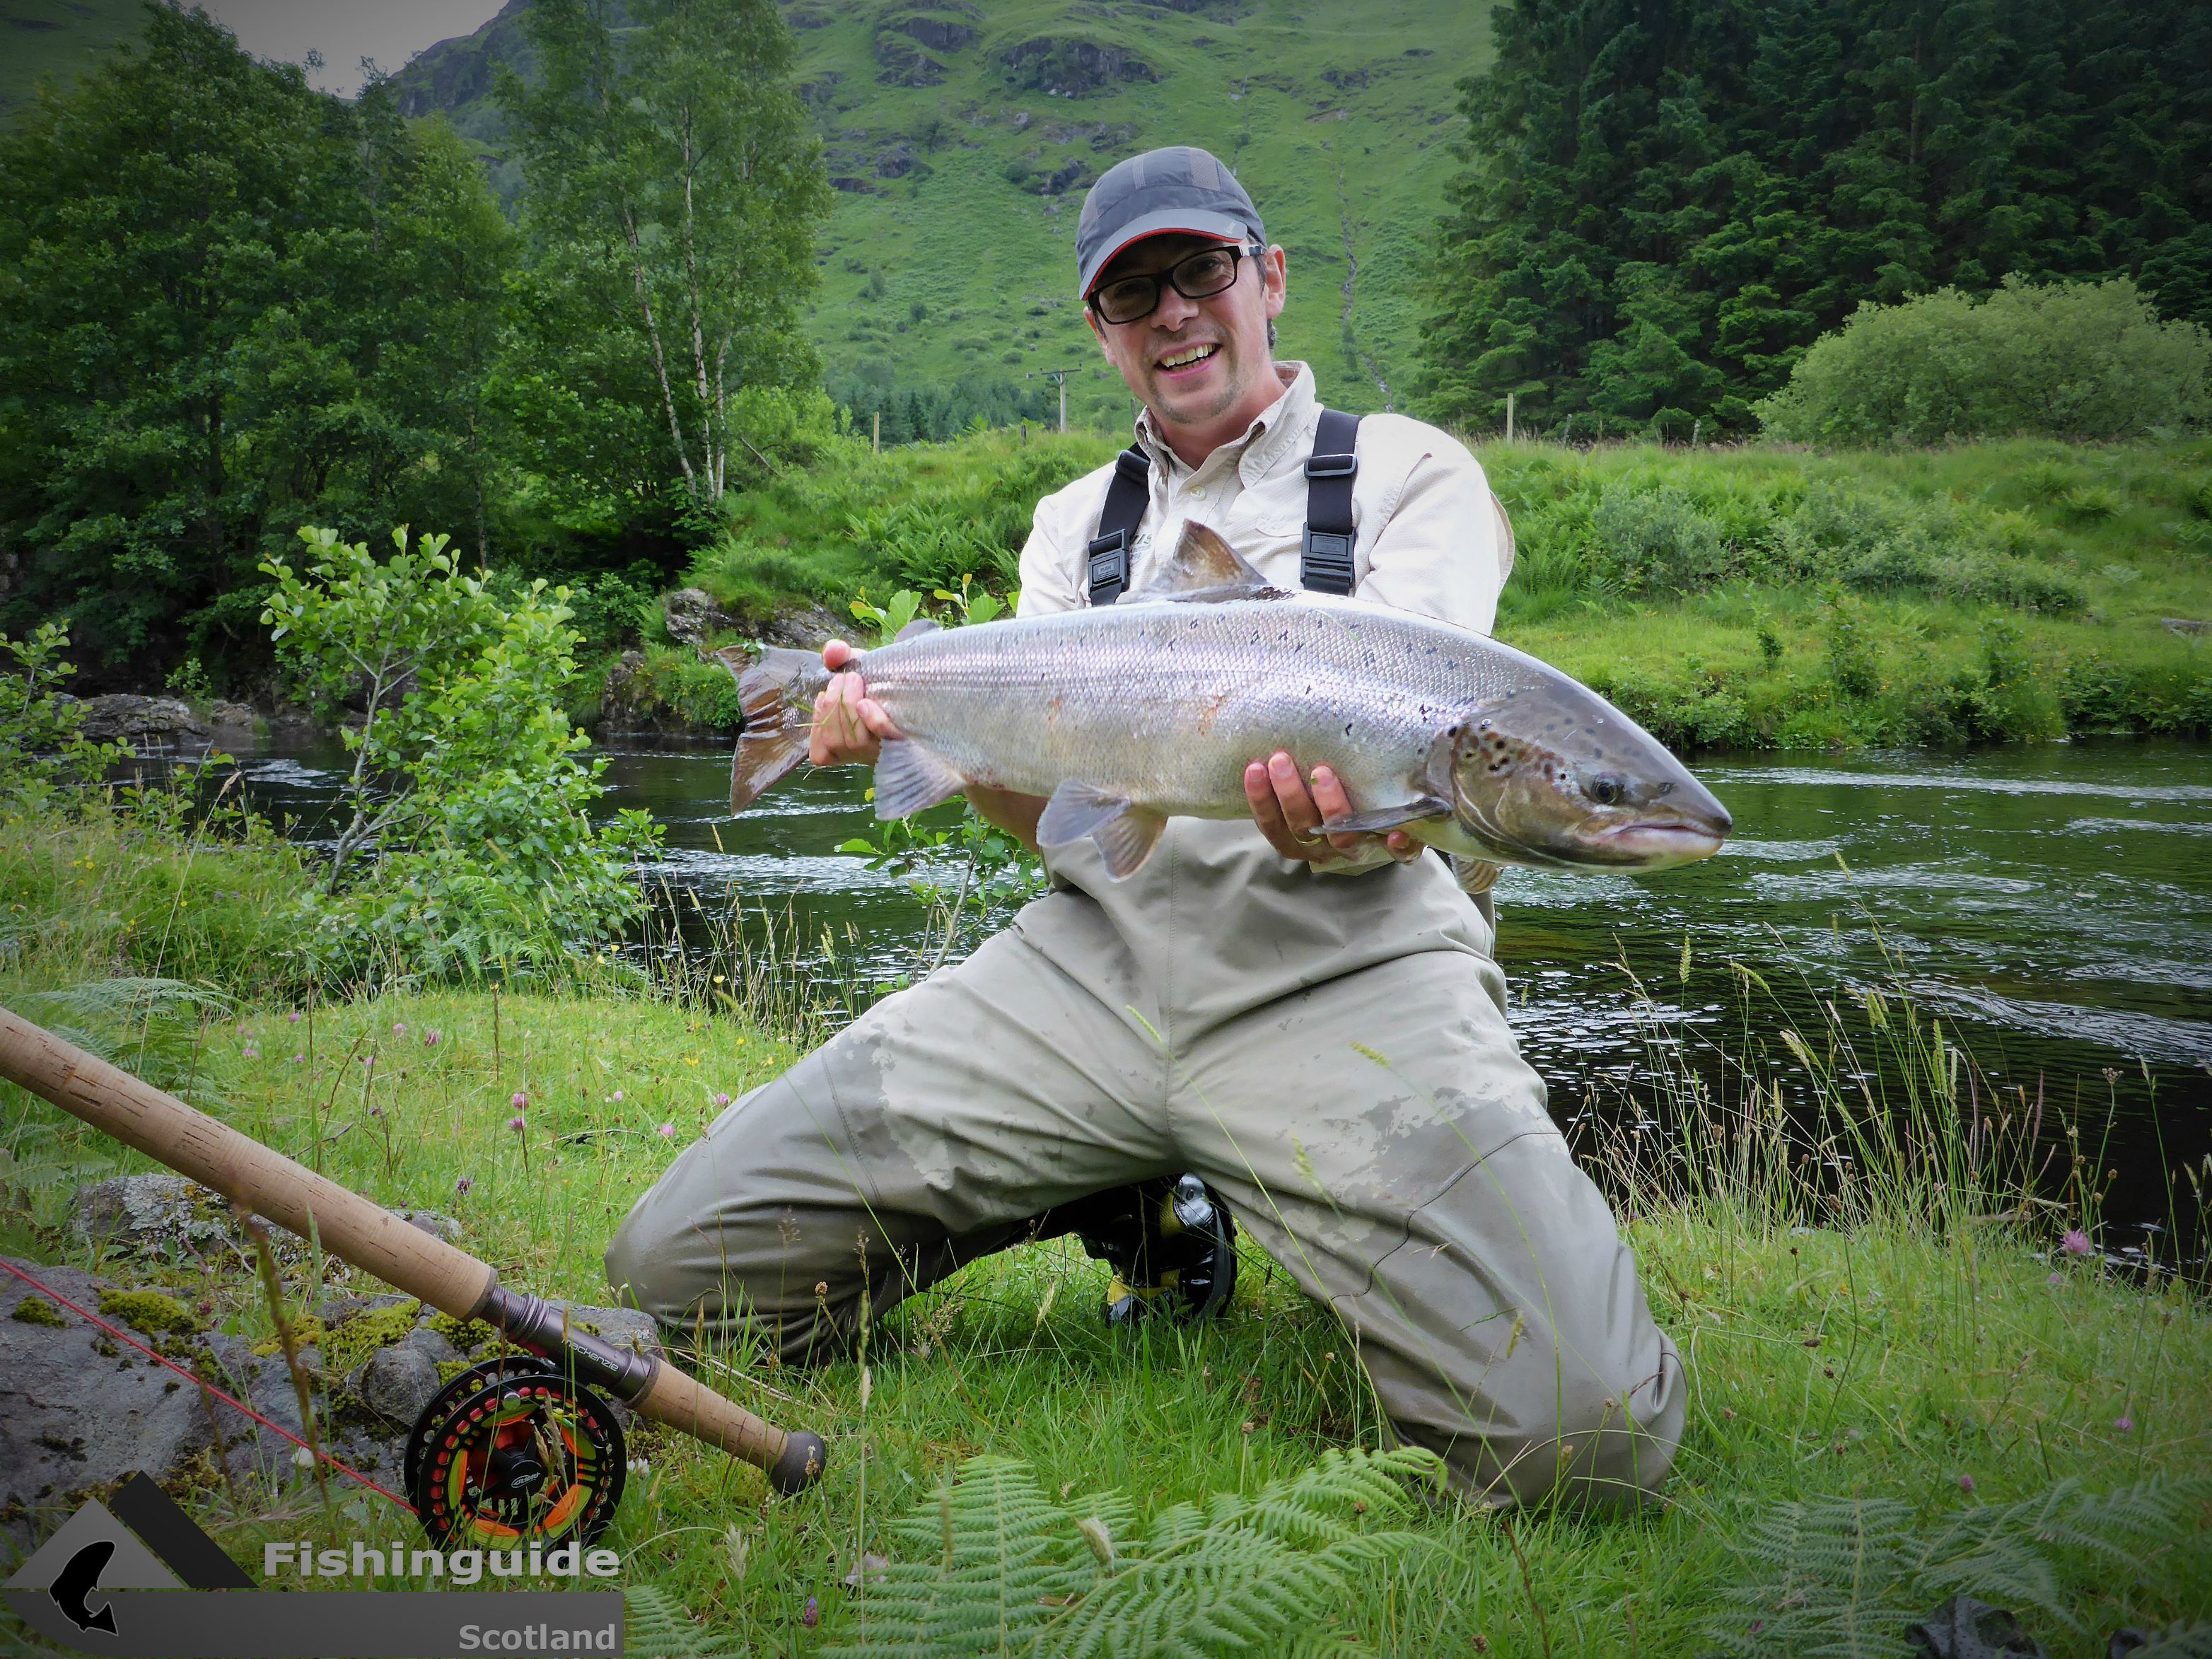 Agryll Fishing Trips | Scotland | Catch salmon on exclusive